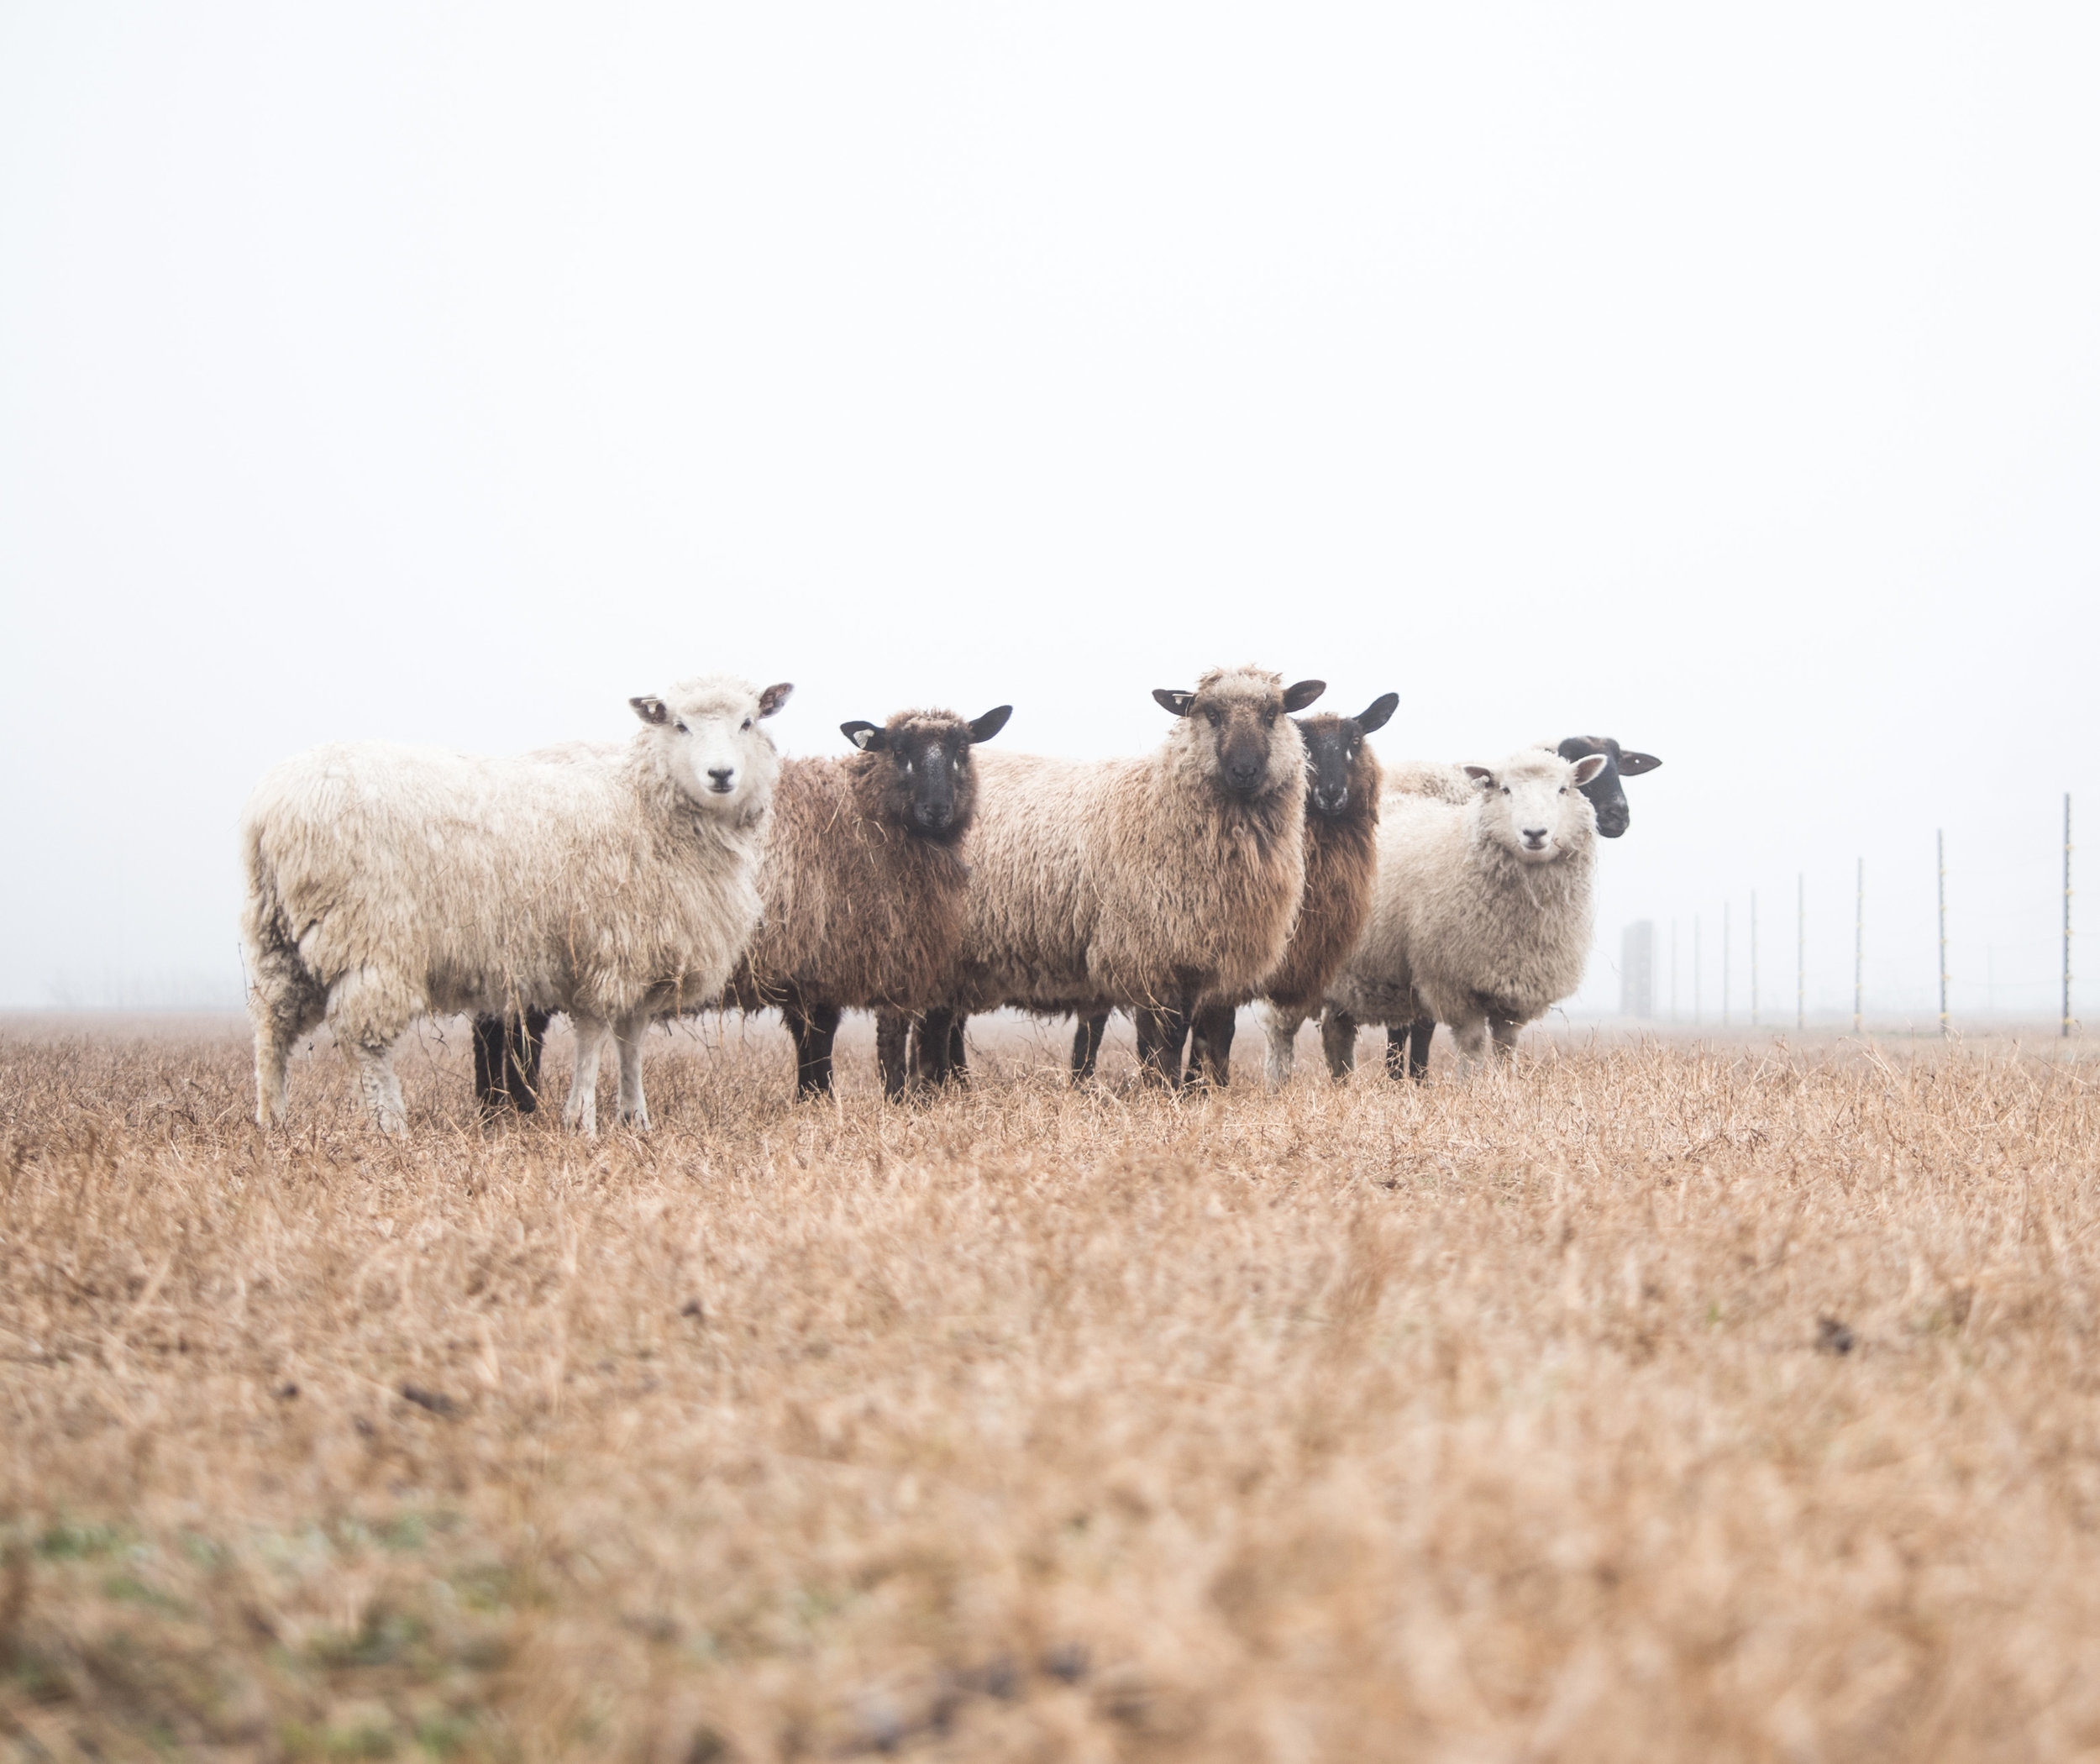 Here are a few of our girls. You can really see the color variety that wool naturally comes in. If you dye the natural color, darker wools, you'll get some really earthy colors. White fleeces will take on many more brighter tones.